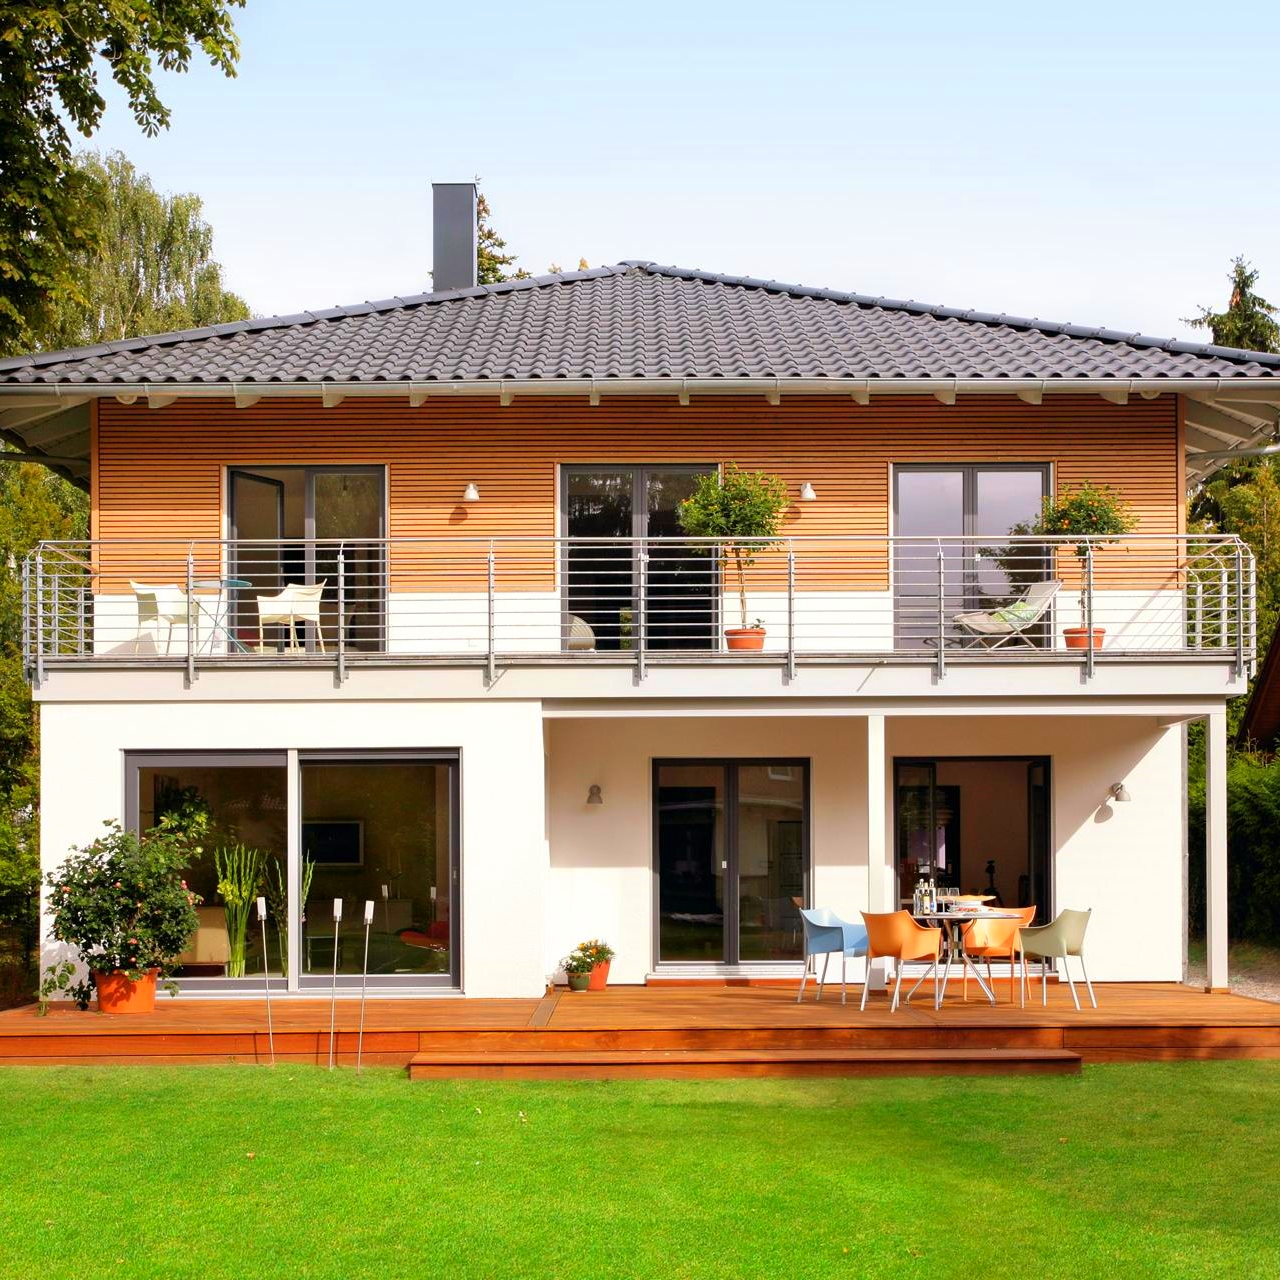 Luxury and Cheap Modular Homes - Family Friendly Homes ... on modern homes montana, modular cabins montana, log homes montana, victorian homes montana, prefab homes montana, cape cod homes montana, luxury homes montana, banks montana,